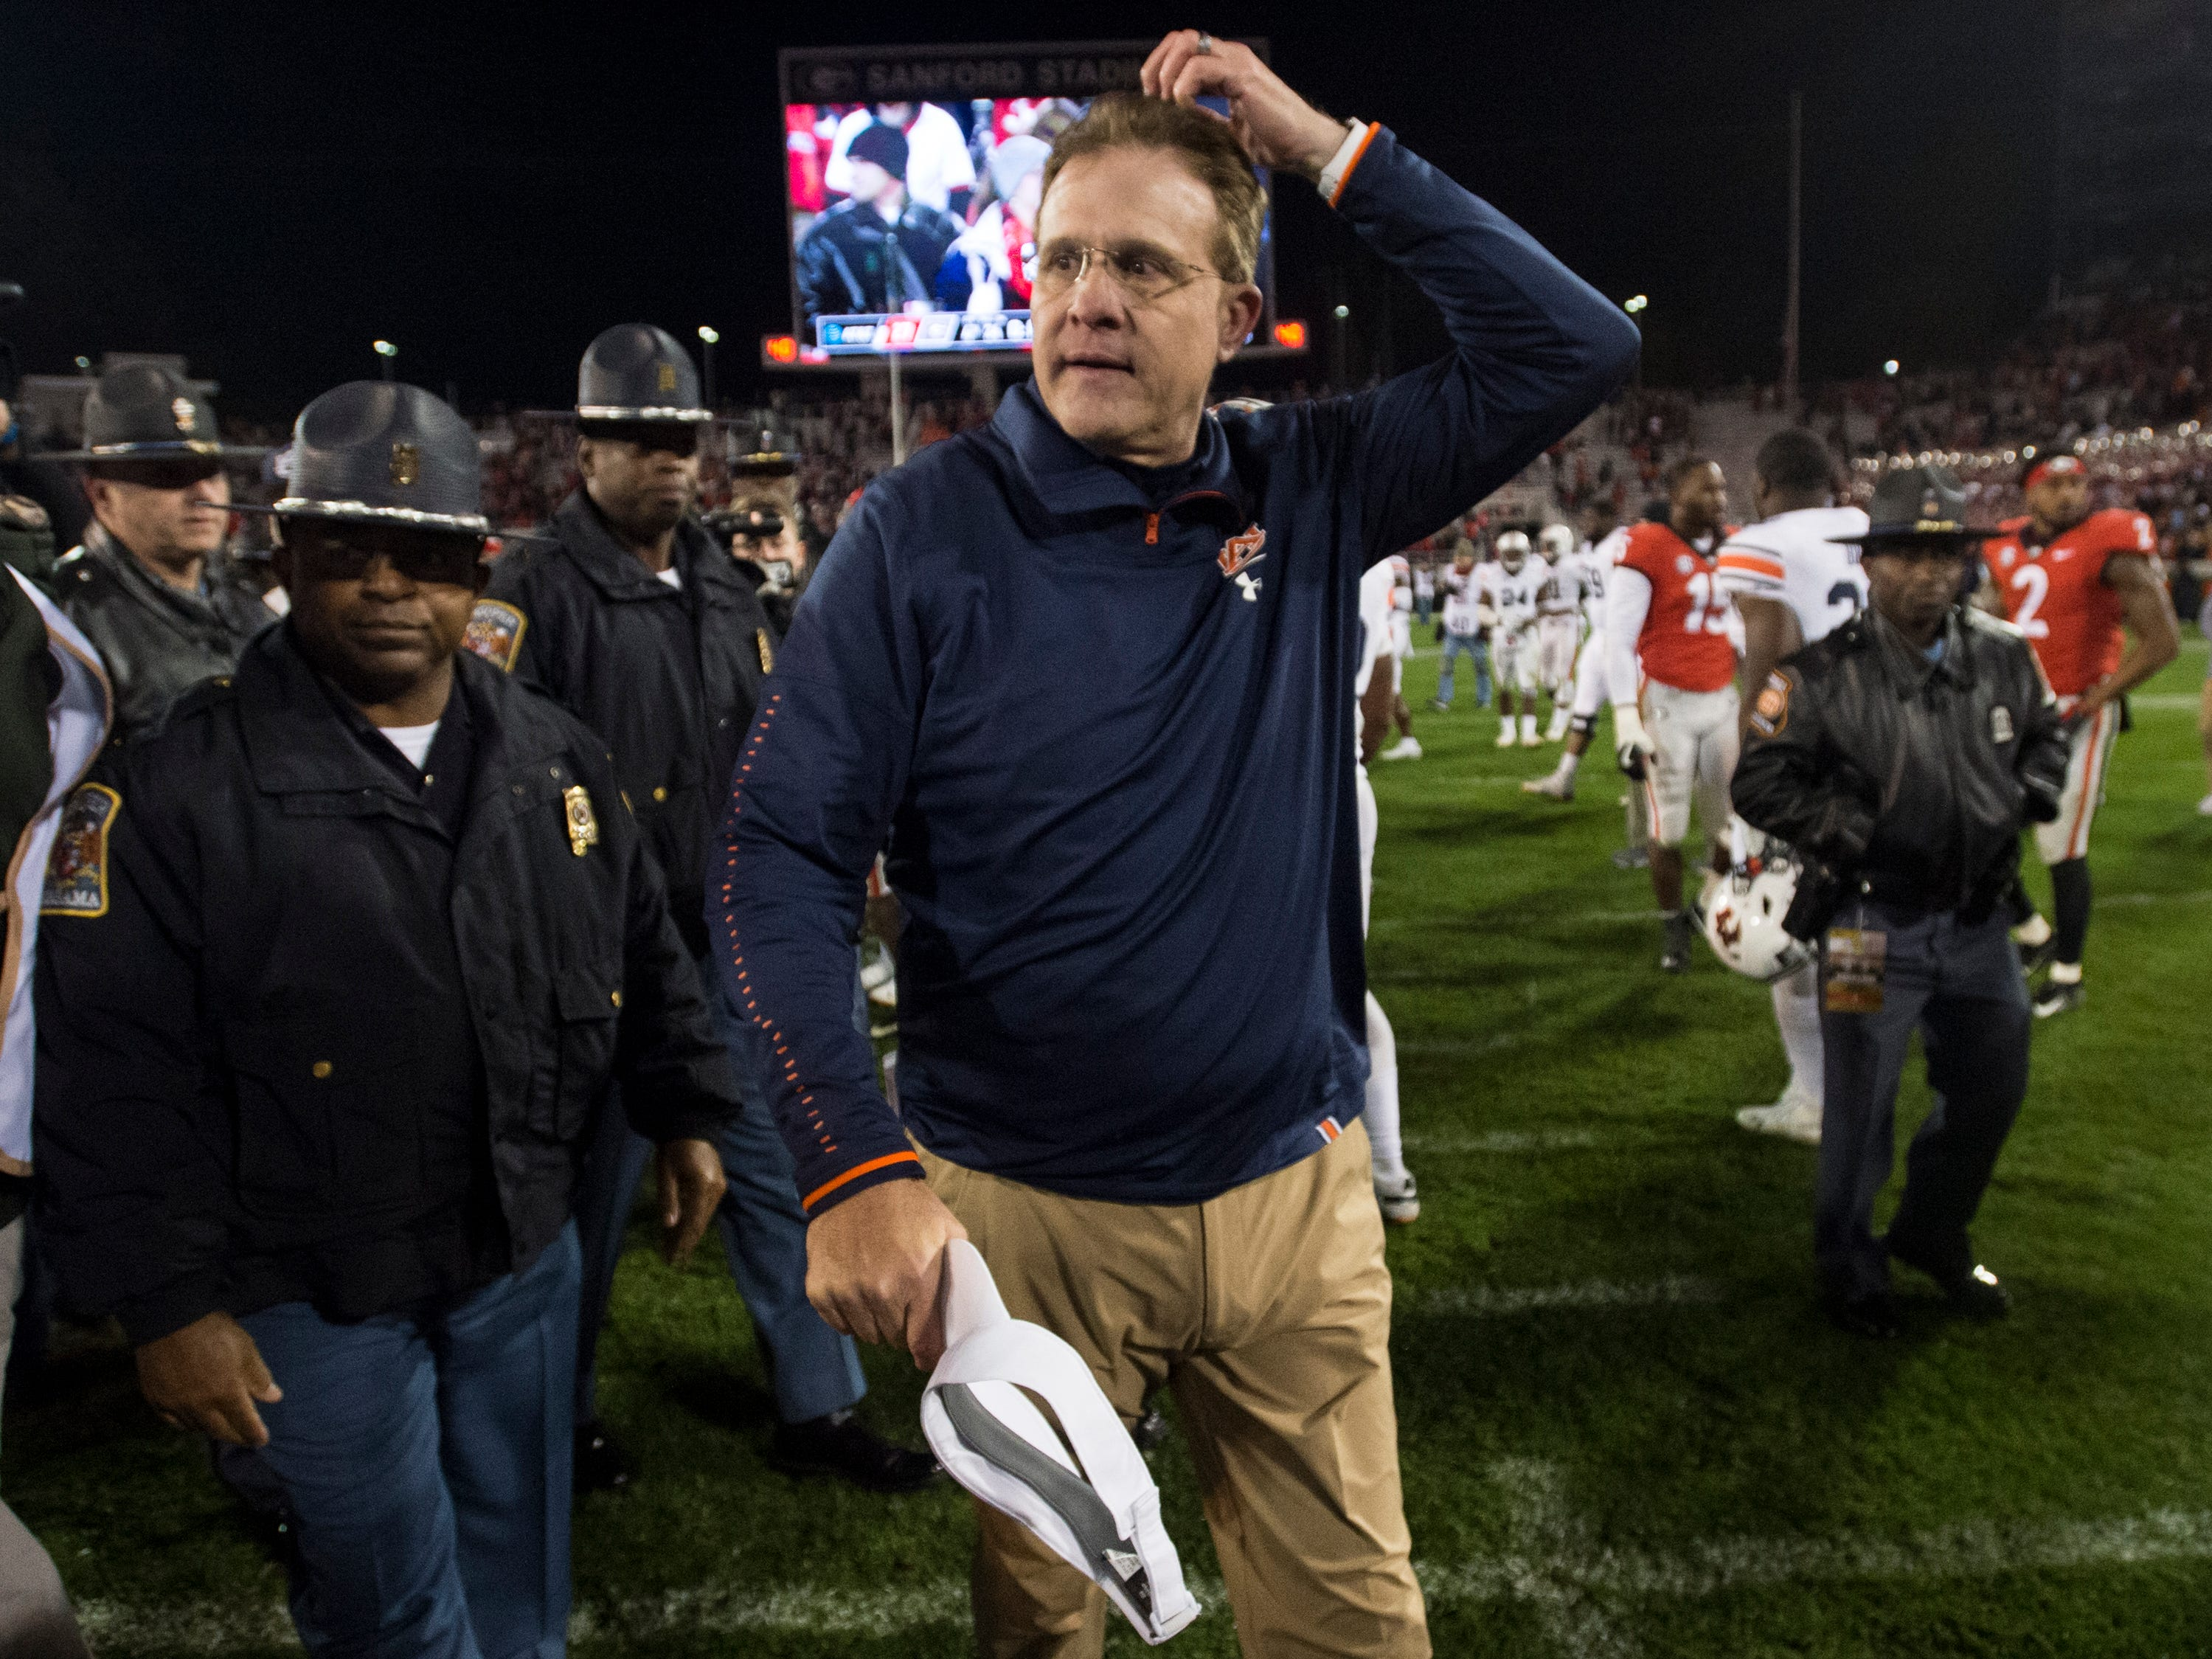 Auburn head coach Gus Malzahn adjusts his hair as he walks off the field after the game at Sanford Stadium in Athens, Ga., on Saturday, Nov. 10, 2018. Georgia defeated Auburn 27-10.